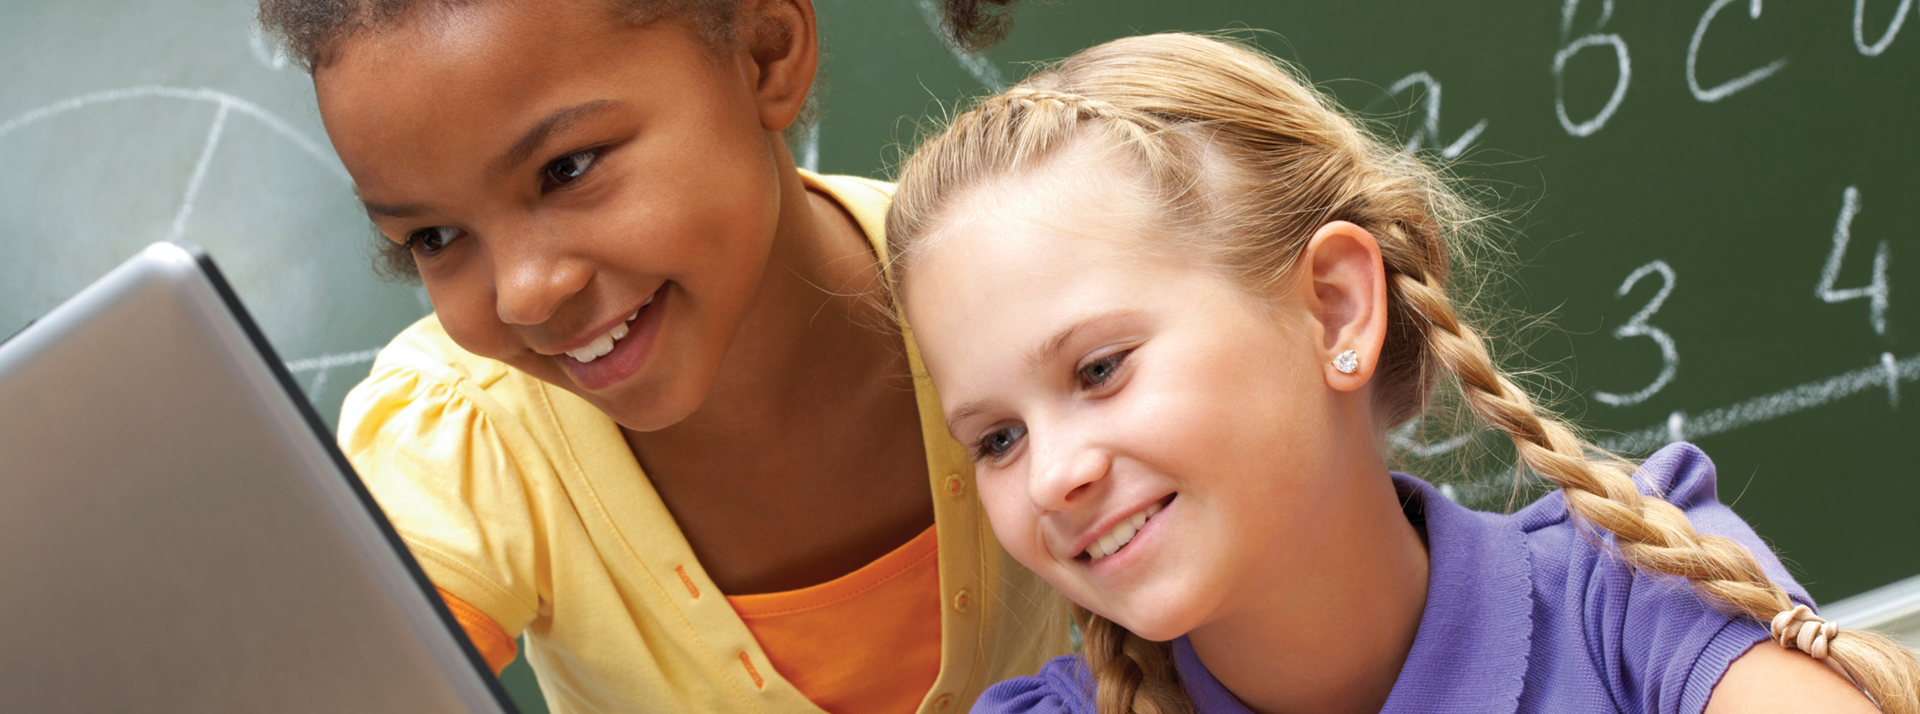 Ensuring that our children are mentally and physically prepared to come to school, ready to learn.